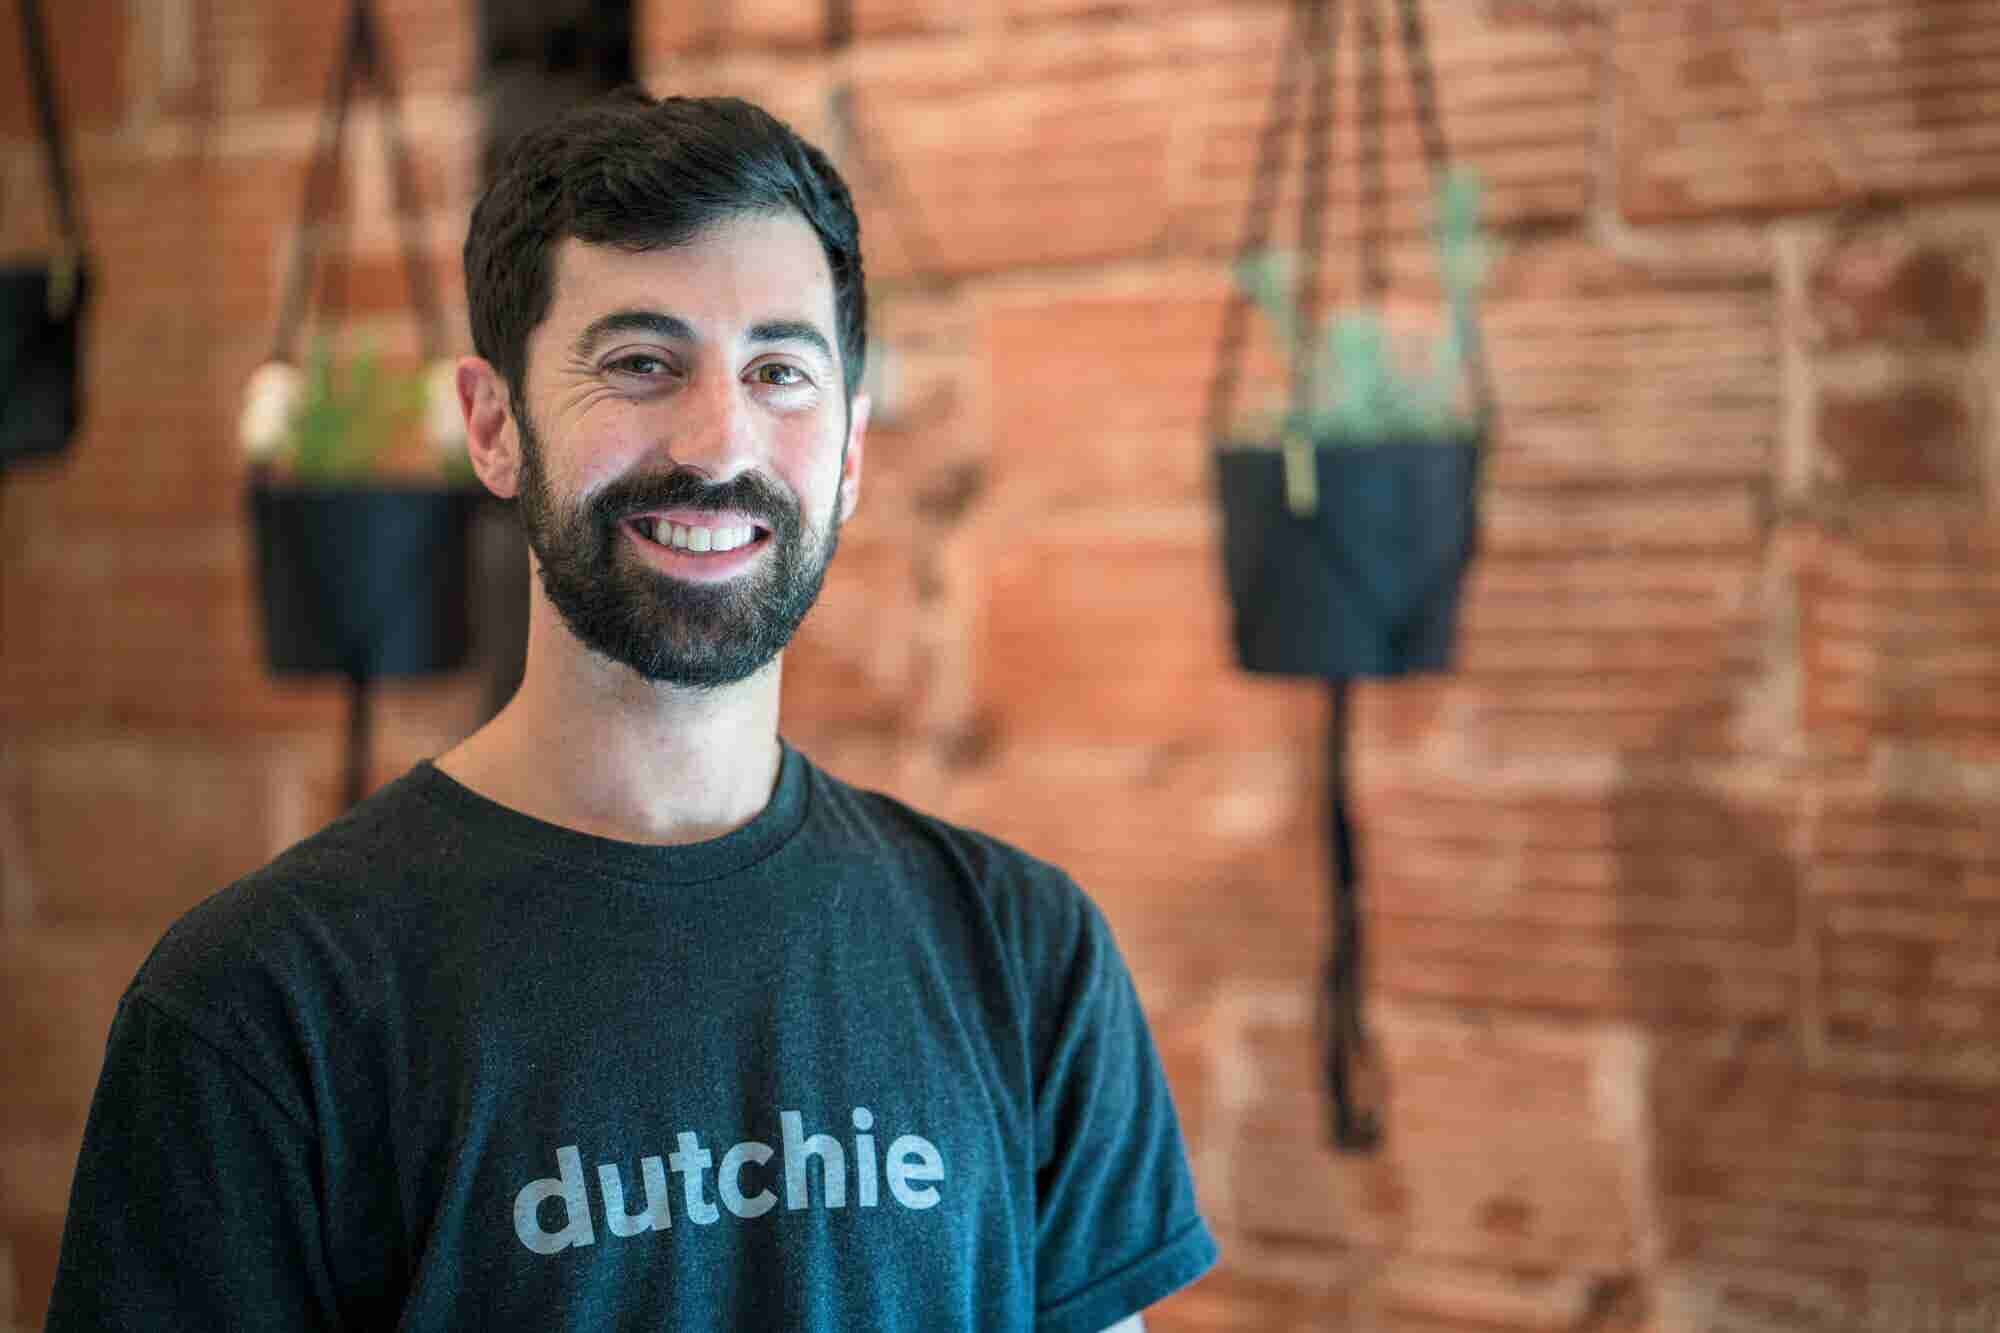 How This Food-Delivery Entrepreneur Pivoted to Cannabis-Delivery